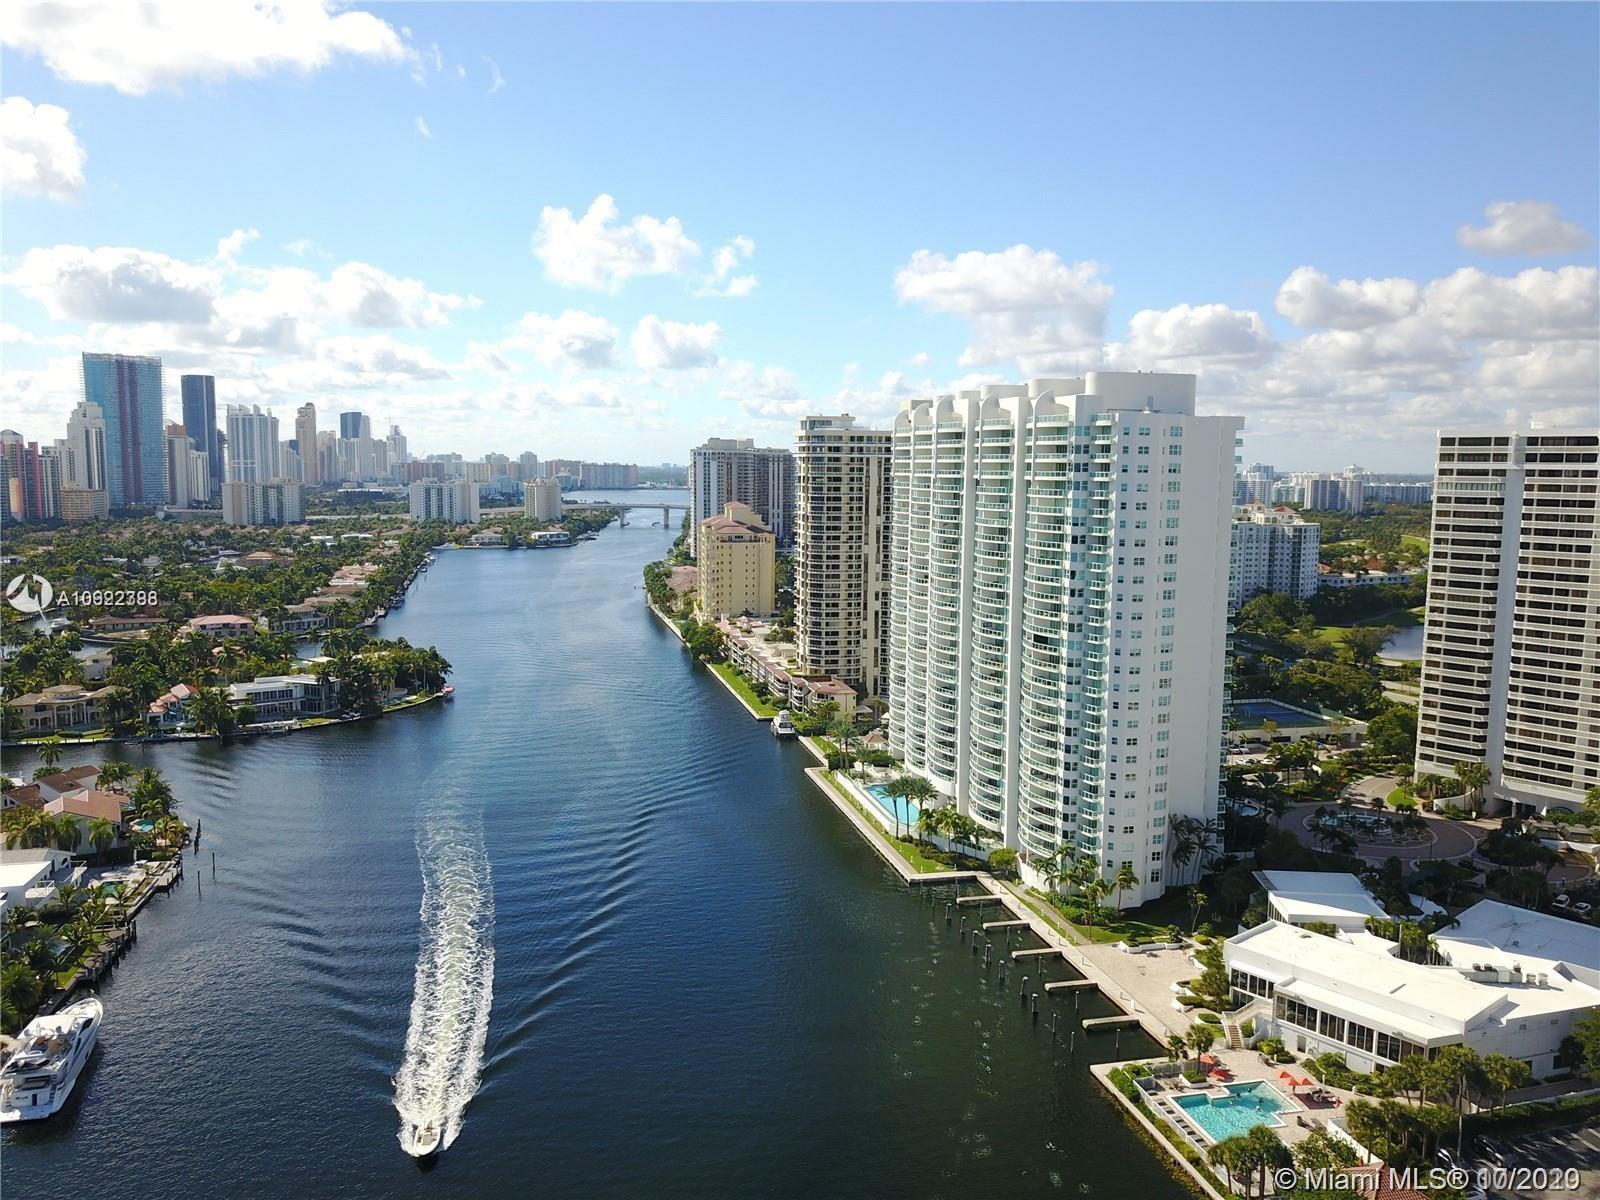 Hamptons South #1405 - 20201 E Country Club Dr #1405, Aventura, FL 33180